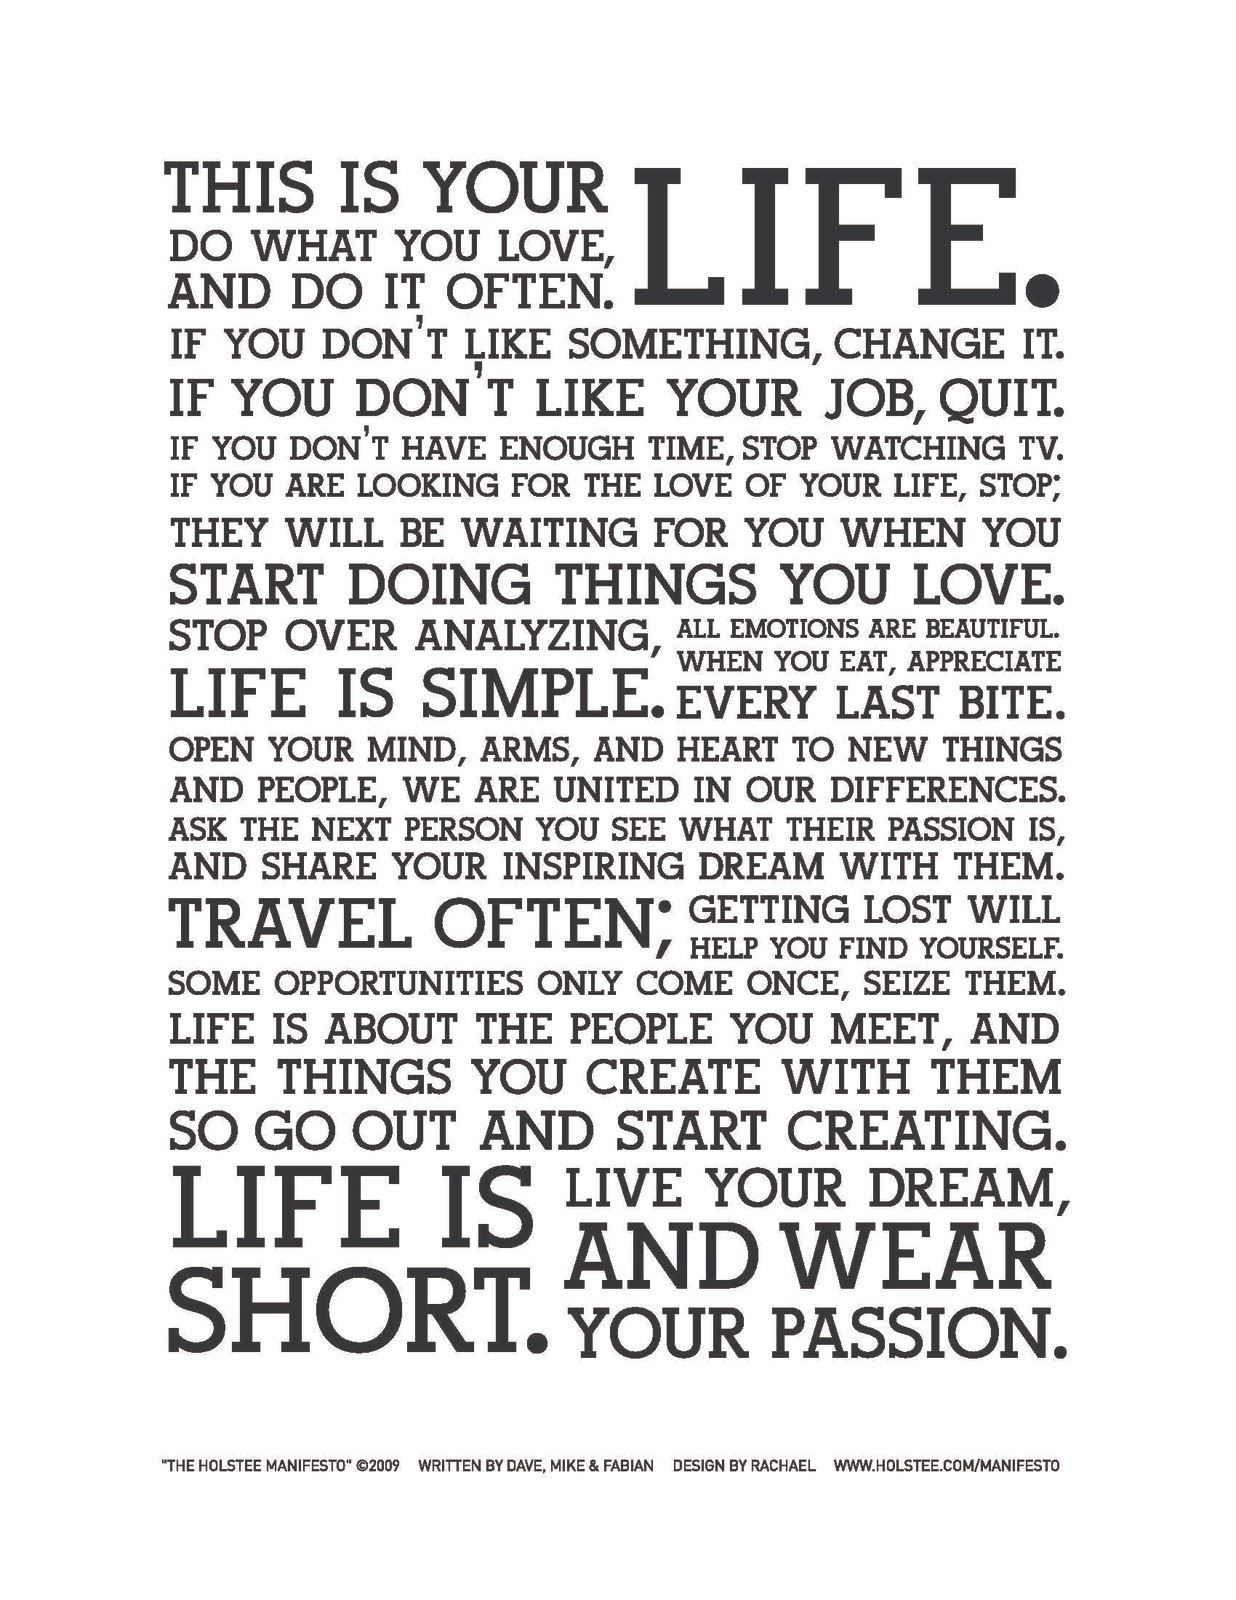 This Is Your Life. Do What You Love, And Do It Often. If You Donu0027t Like  Something, Change It. If You Donu0027t Like Your Job, Quit.